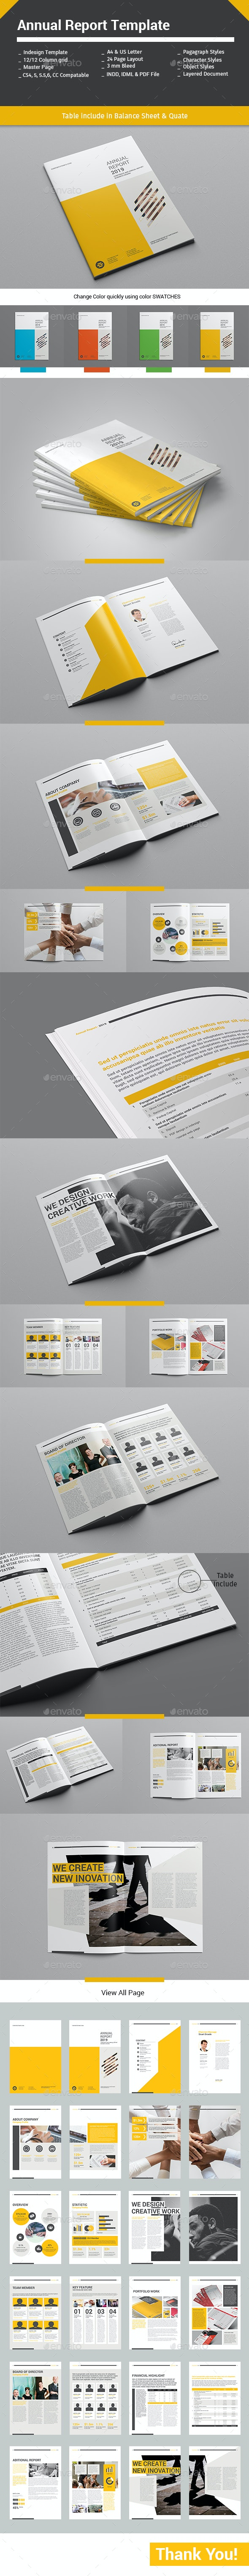 Annual Report Template 24 Pages - Informational Brochures